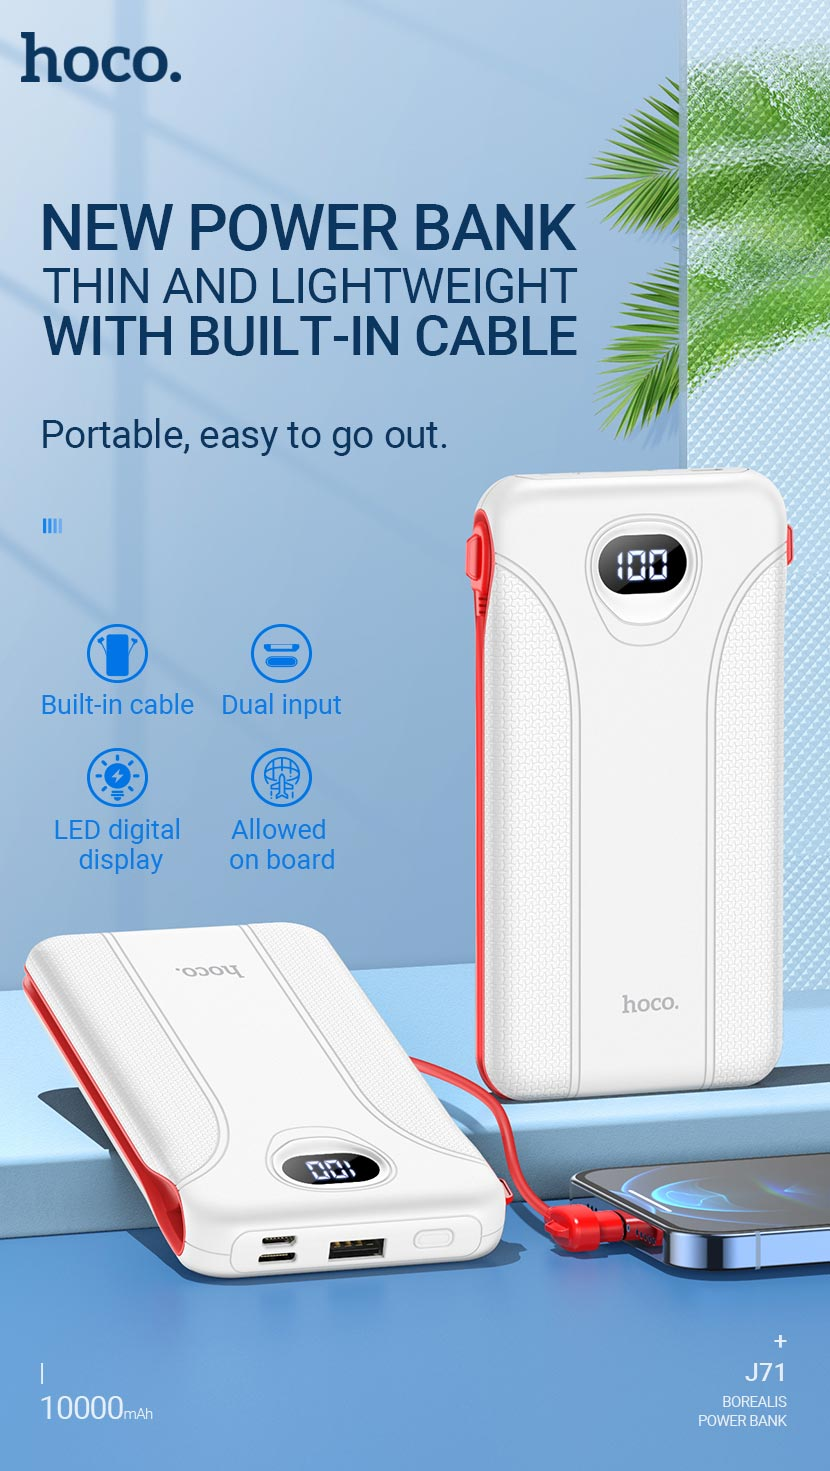 hoco news j71 borealis power bank 10000mah en